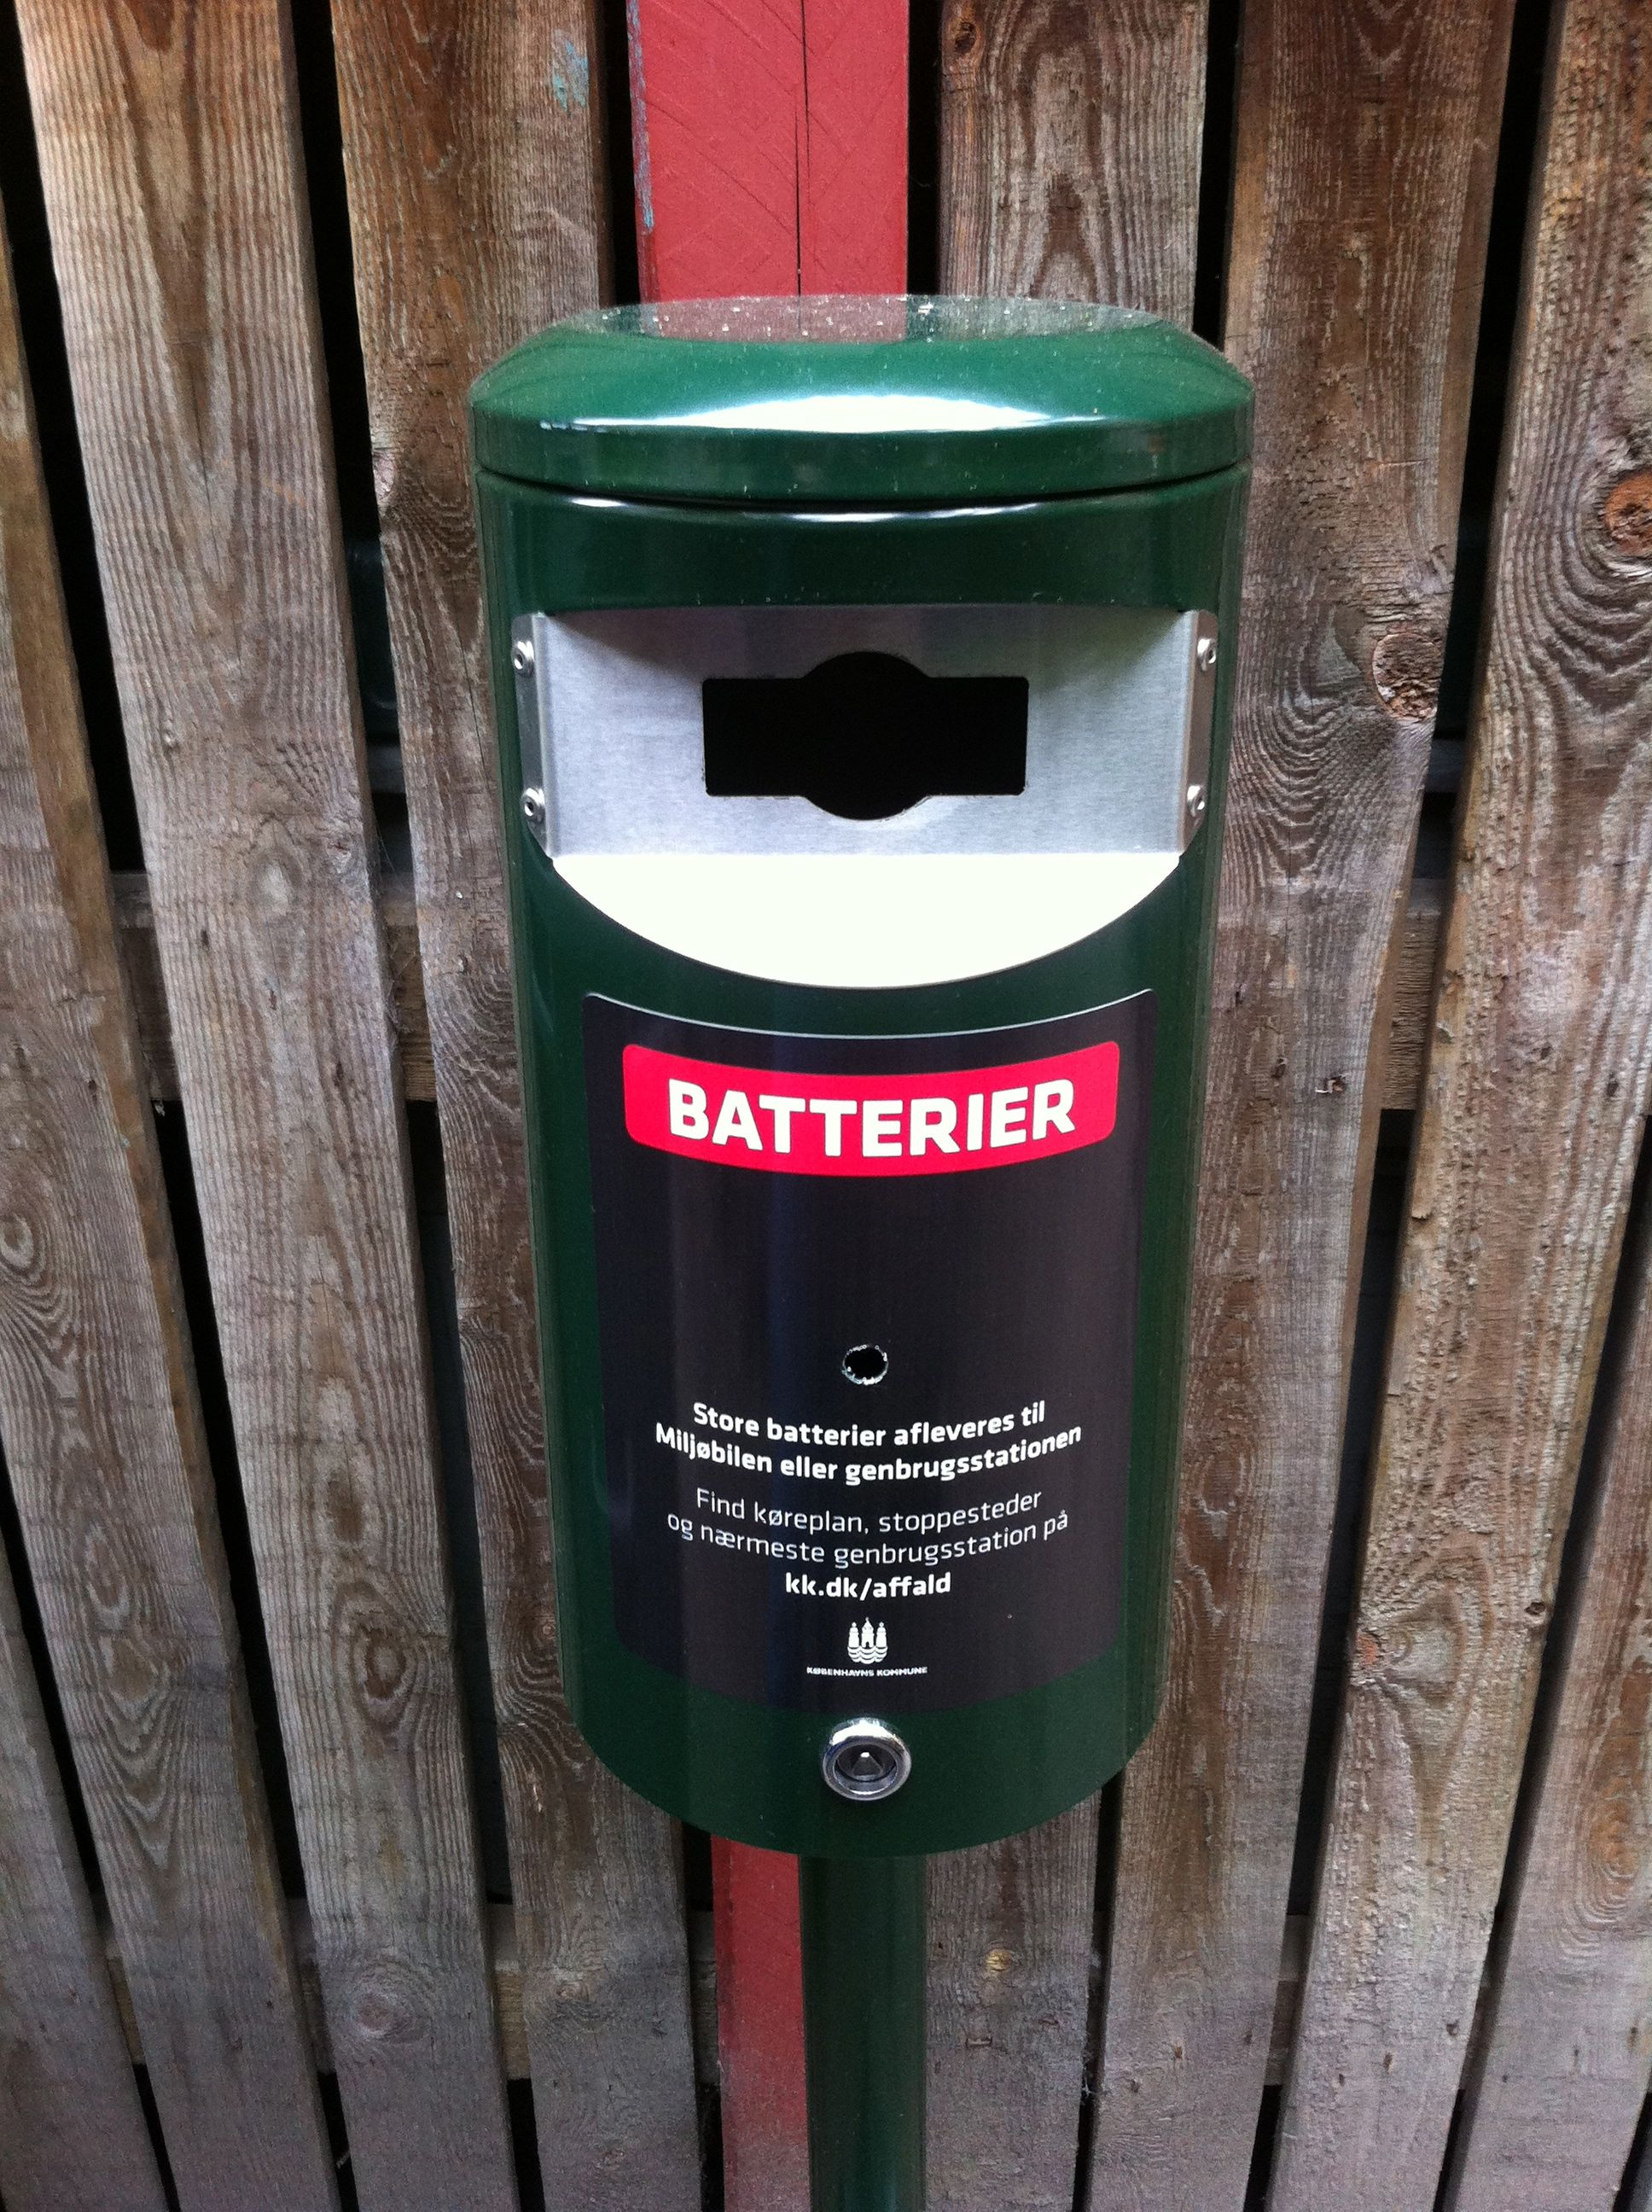 Batterier affald